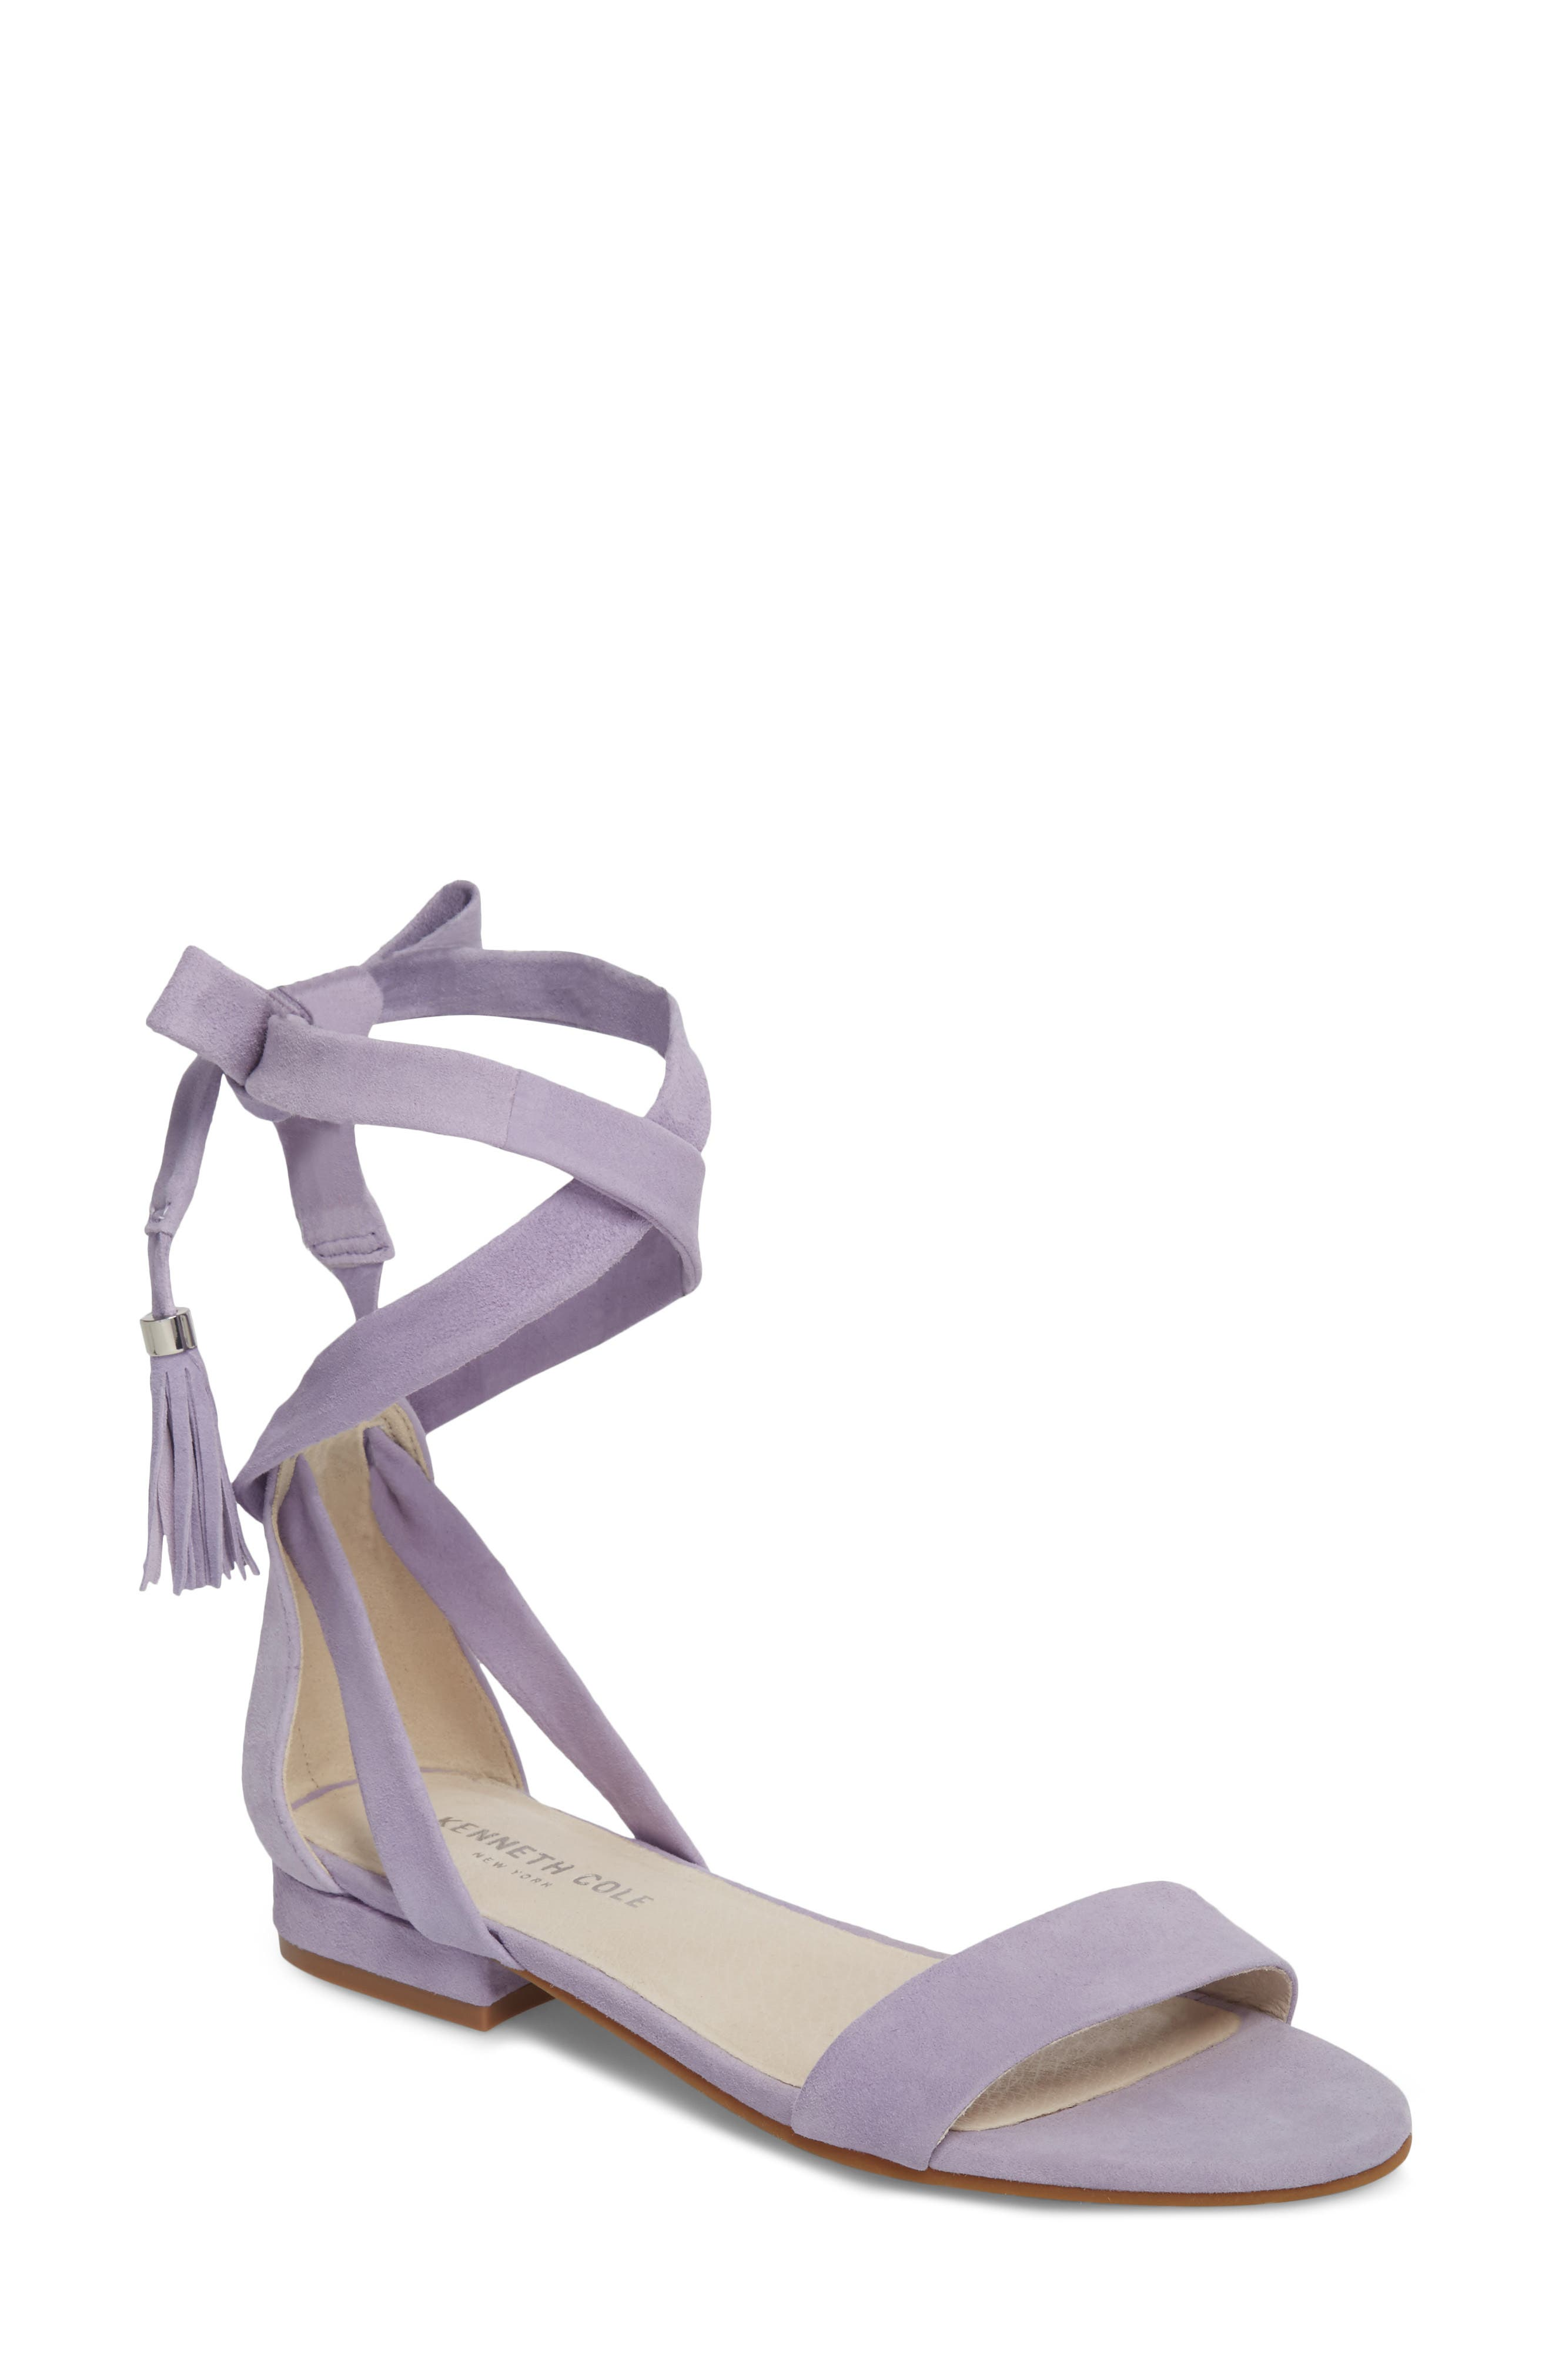 Valen Tassel Lace-Up Sandal,                             Main thumbnail 1, color,                             530